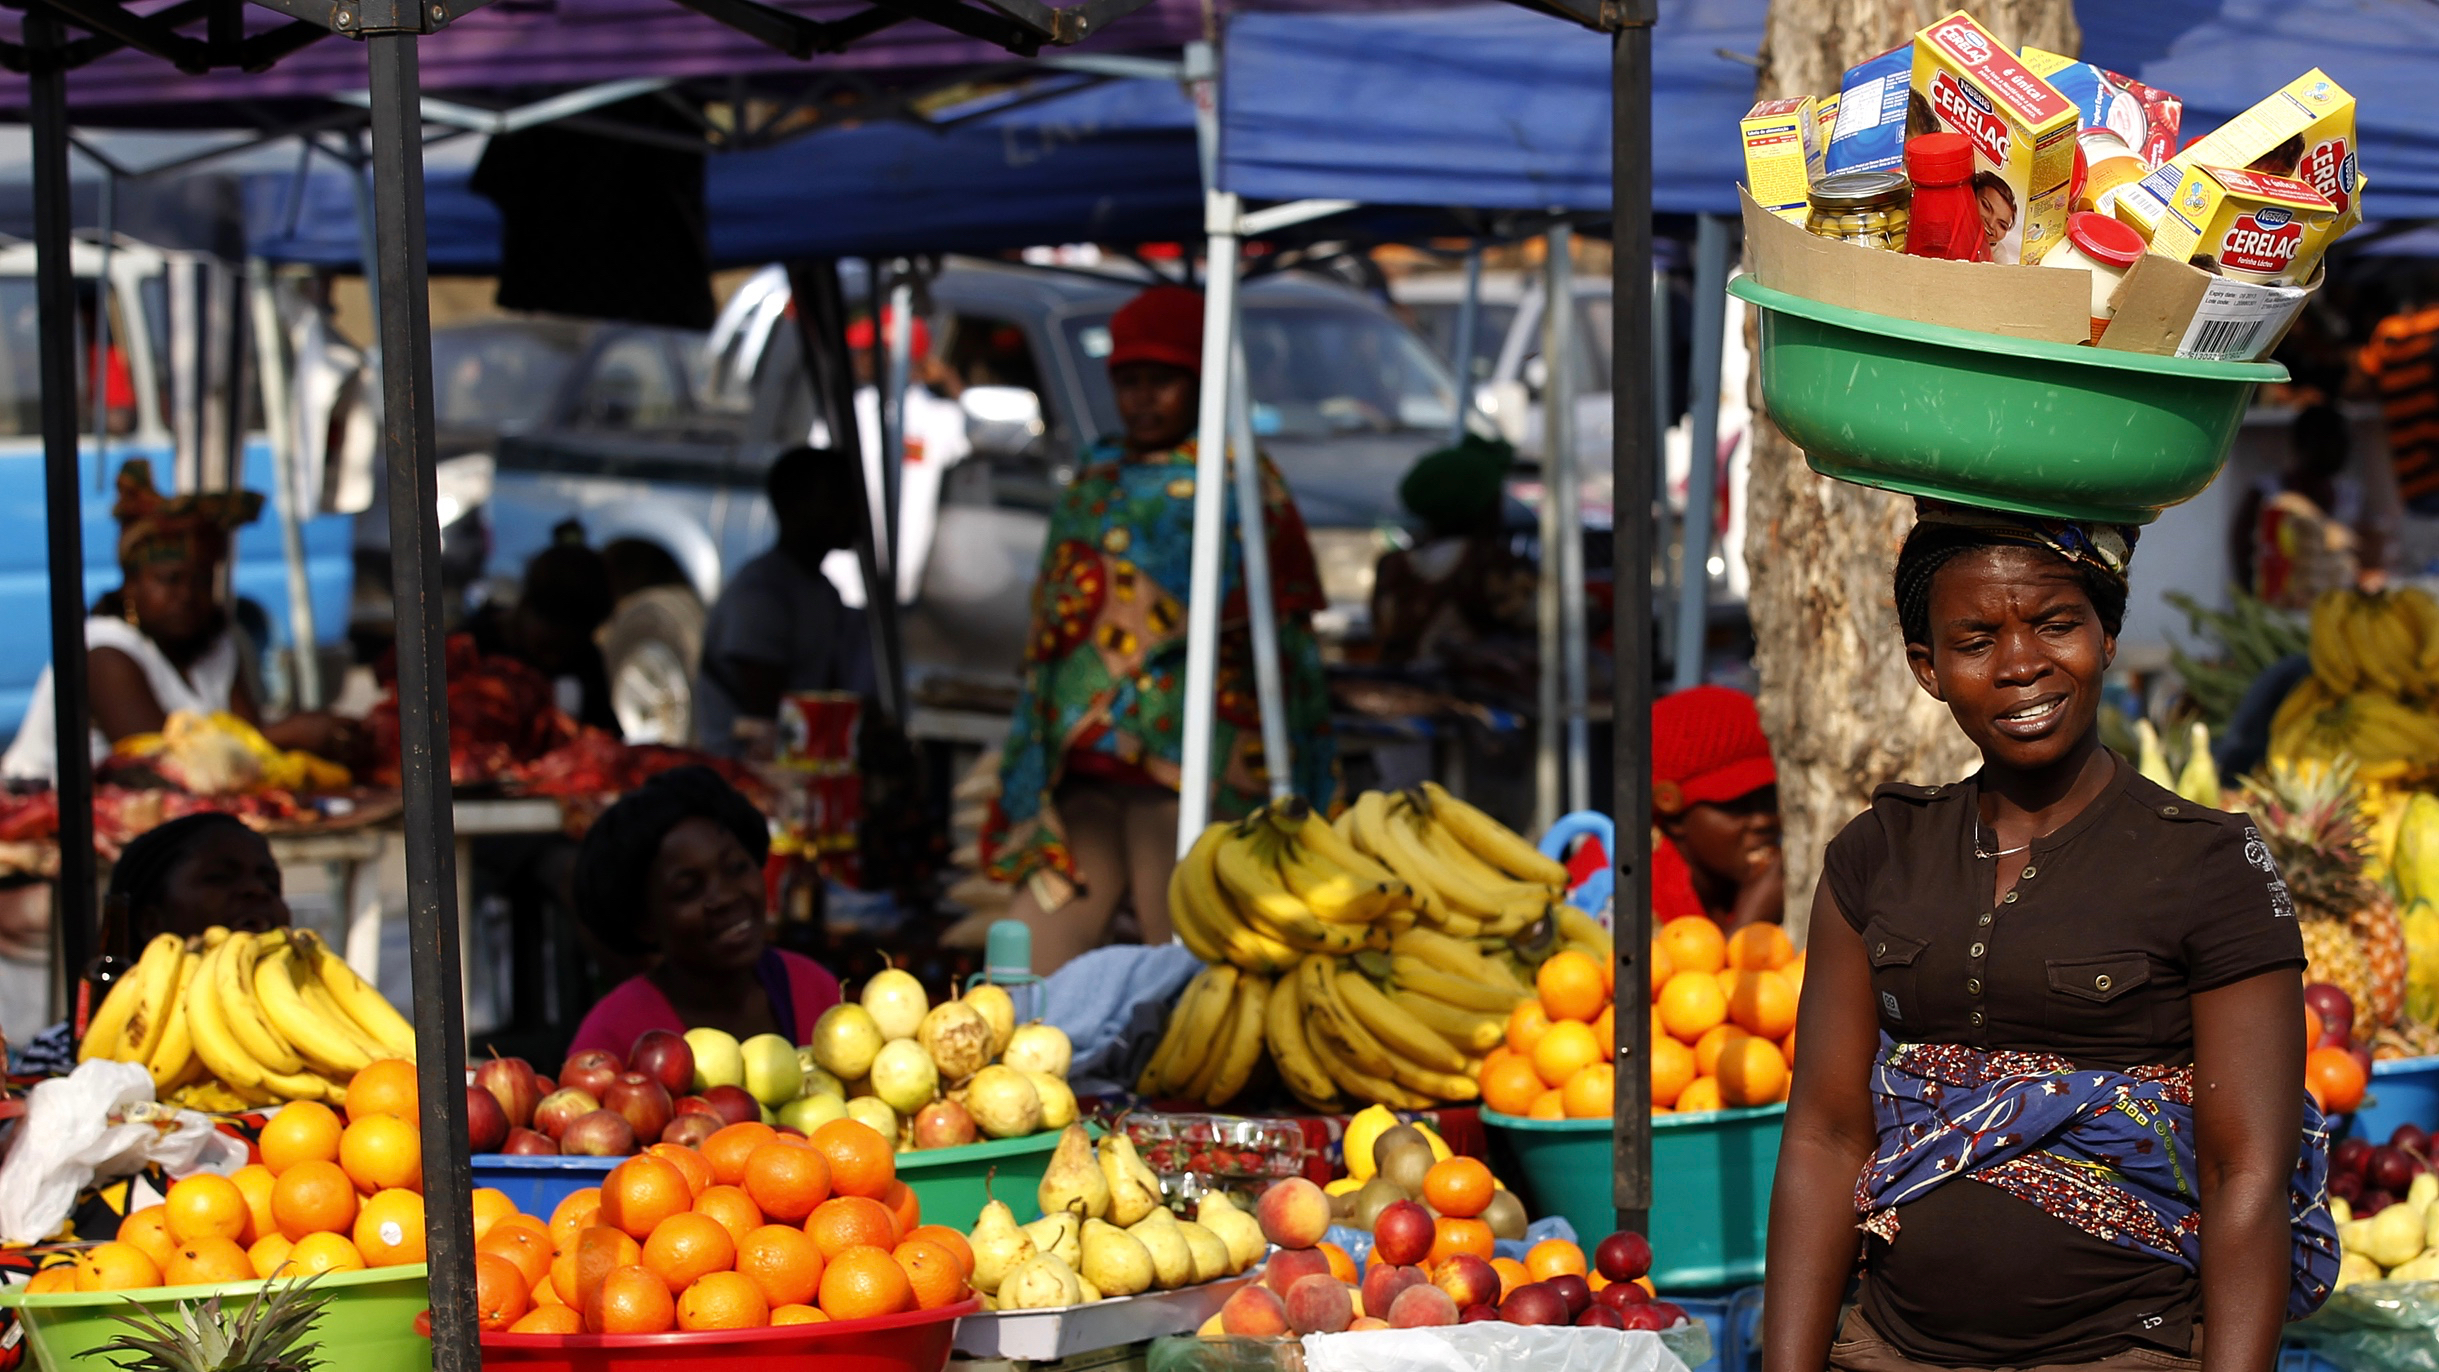 A women walks at a market in Luanda, August 25, 2012. REUTERS/Siphiwe Sibeko (ANGOLA - Tags: SOCIETY) - RTR374CU